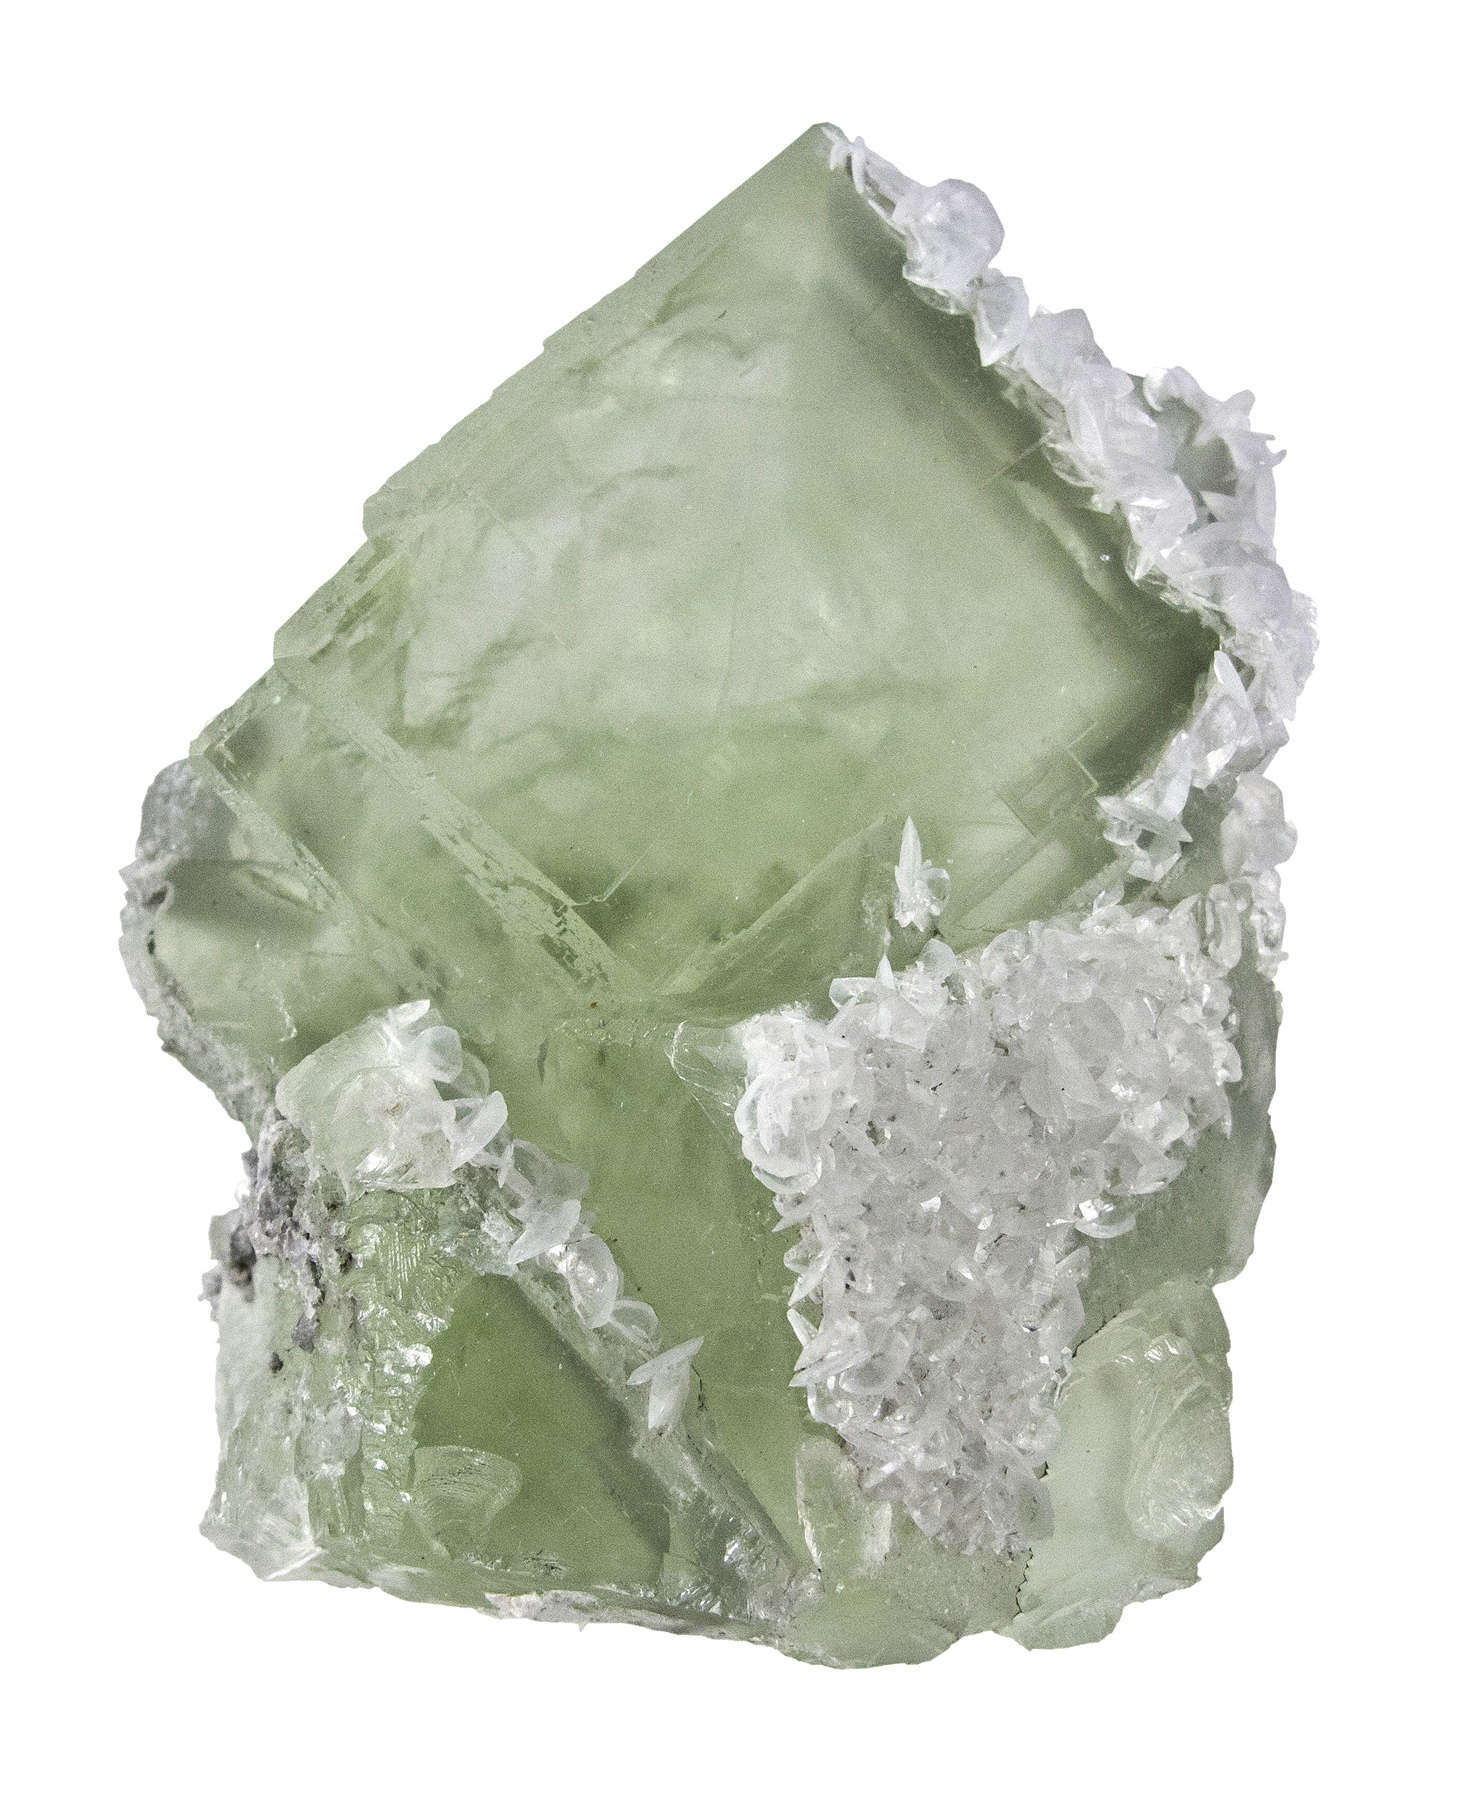 Glassy gemmy light green modified cubes fluorite 4 9 cm edge partially